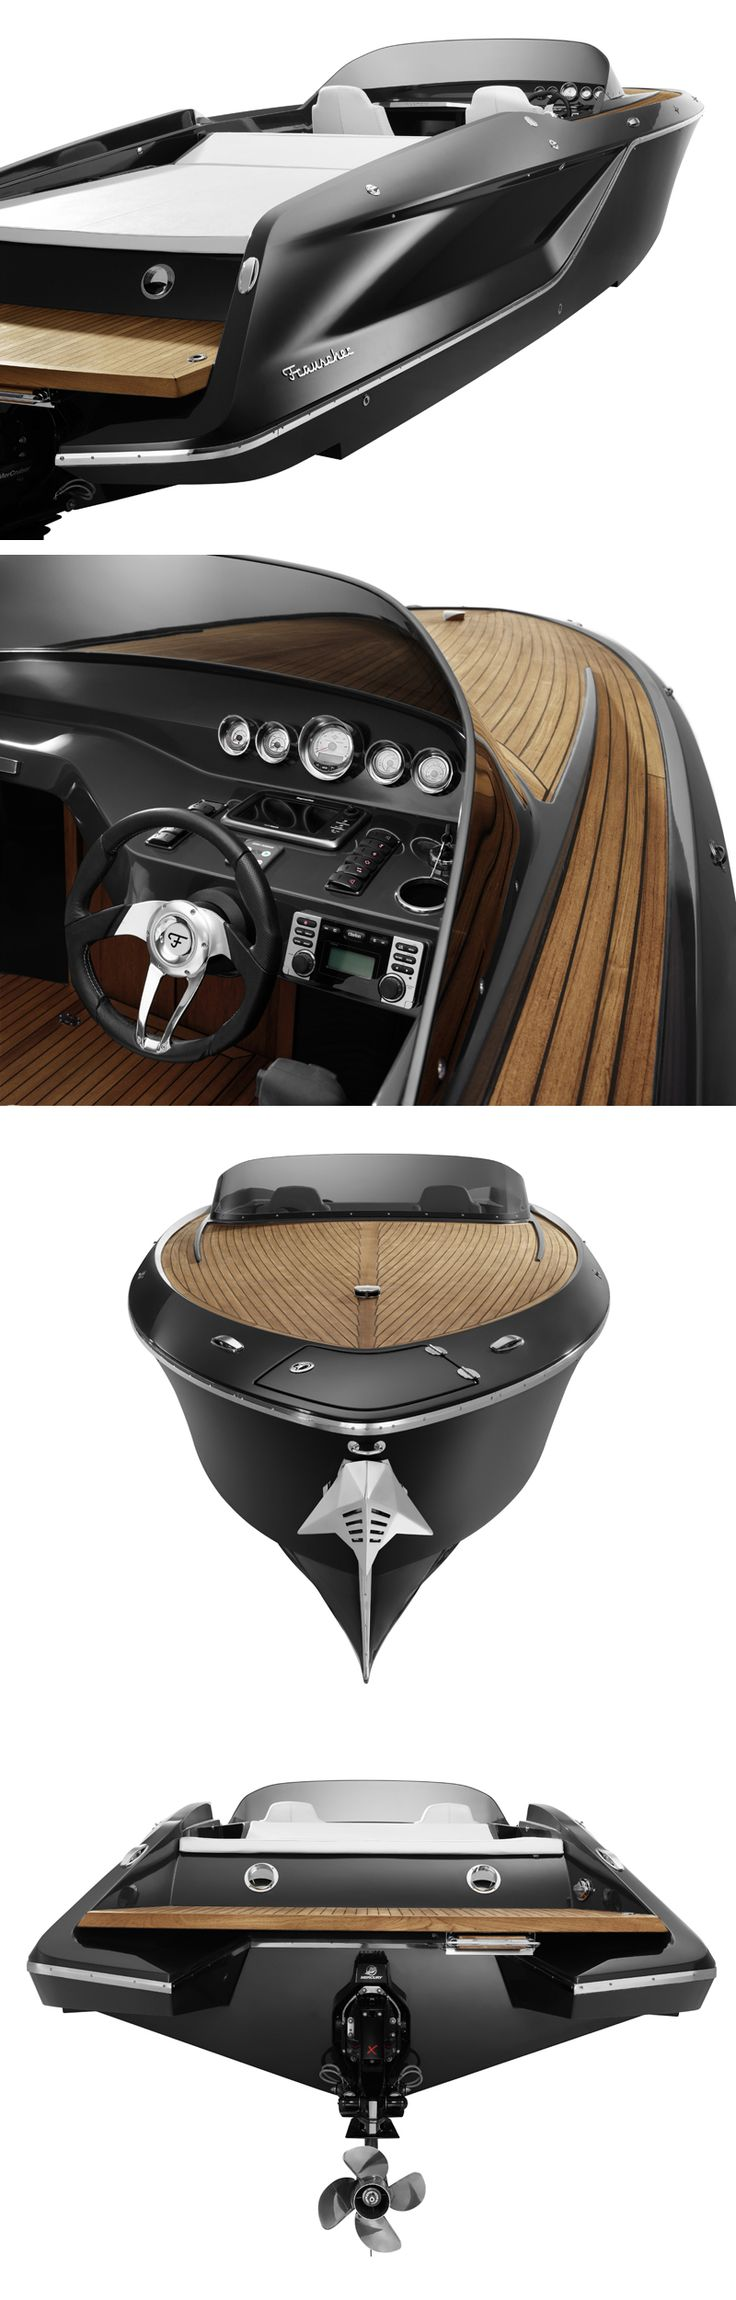 Best 25+ Boat Design Ideas On Pinterest | Cruiser Boat, Boat Interior And  Canal Boat